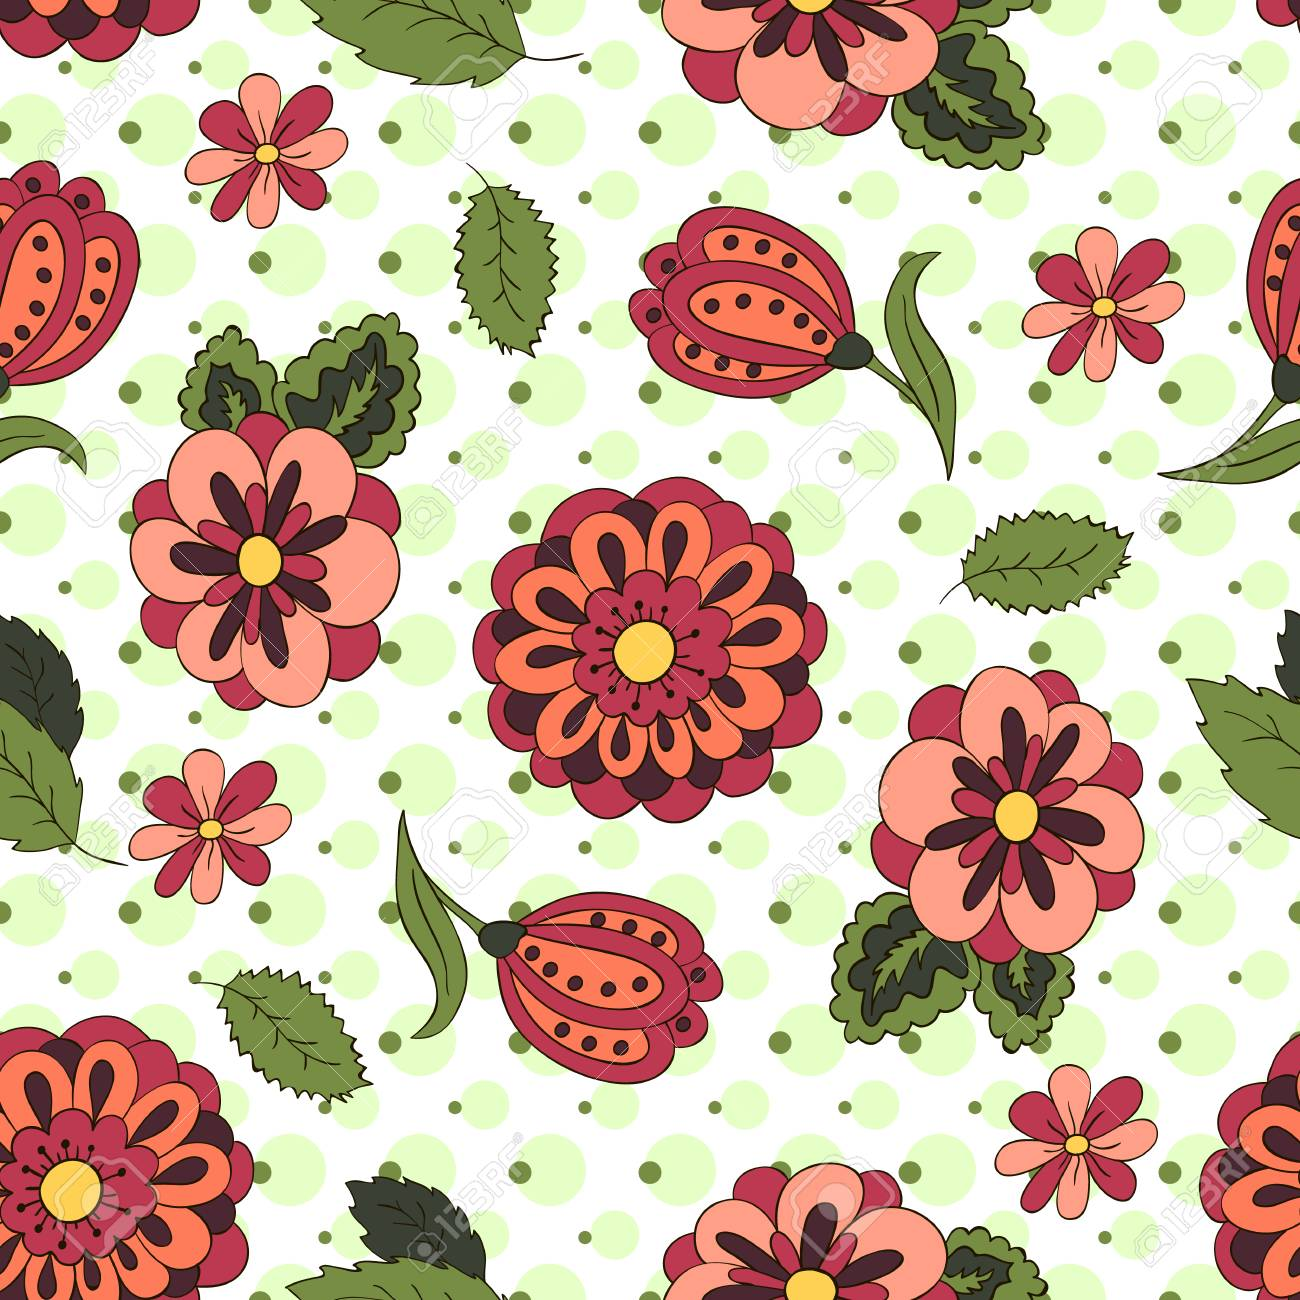 Seamless pattern with spring flowers cover background red seamless pattern with spring flowers cover background red and green colors green mightylinksfo